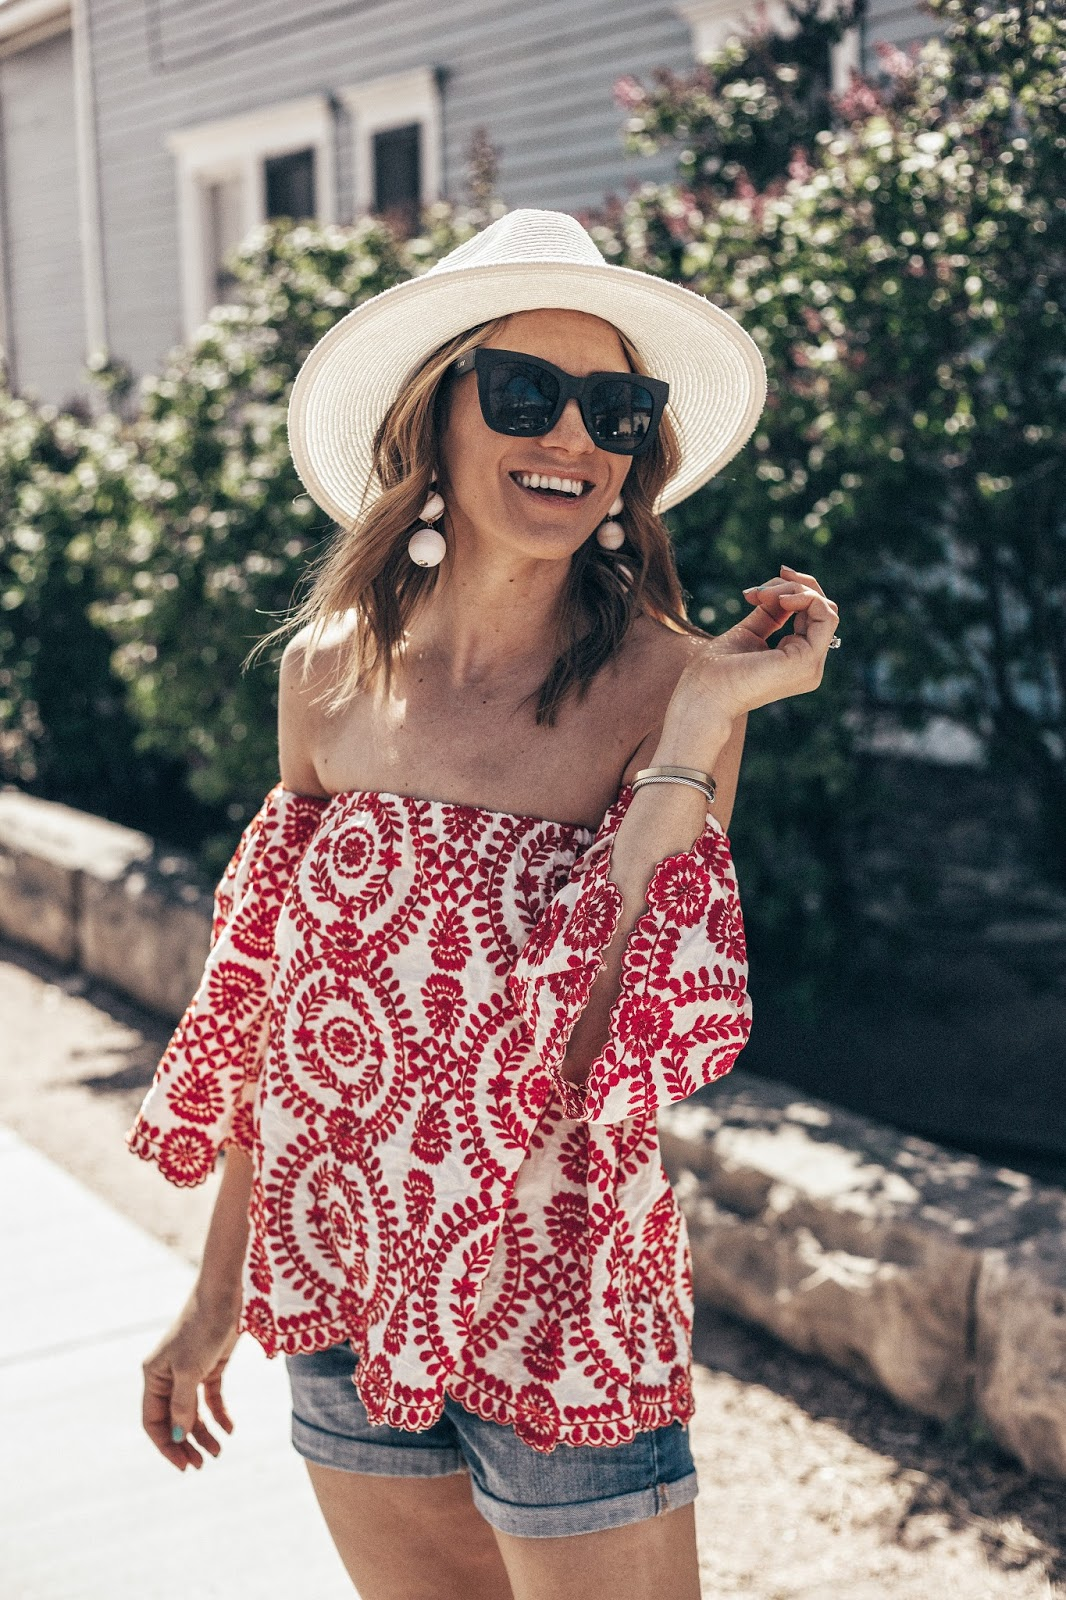 The Best Summer Hats by popular Colorado fashion blogger, Leah Behr